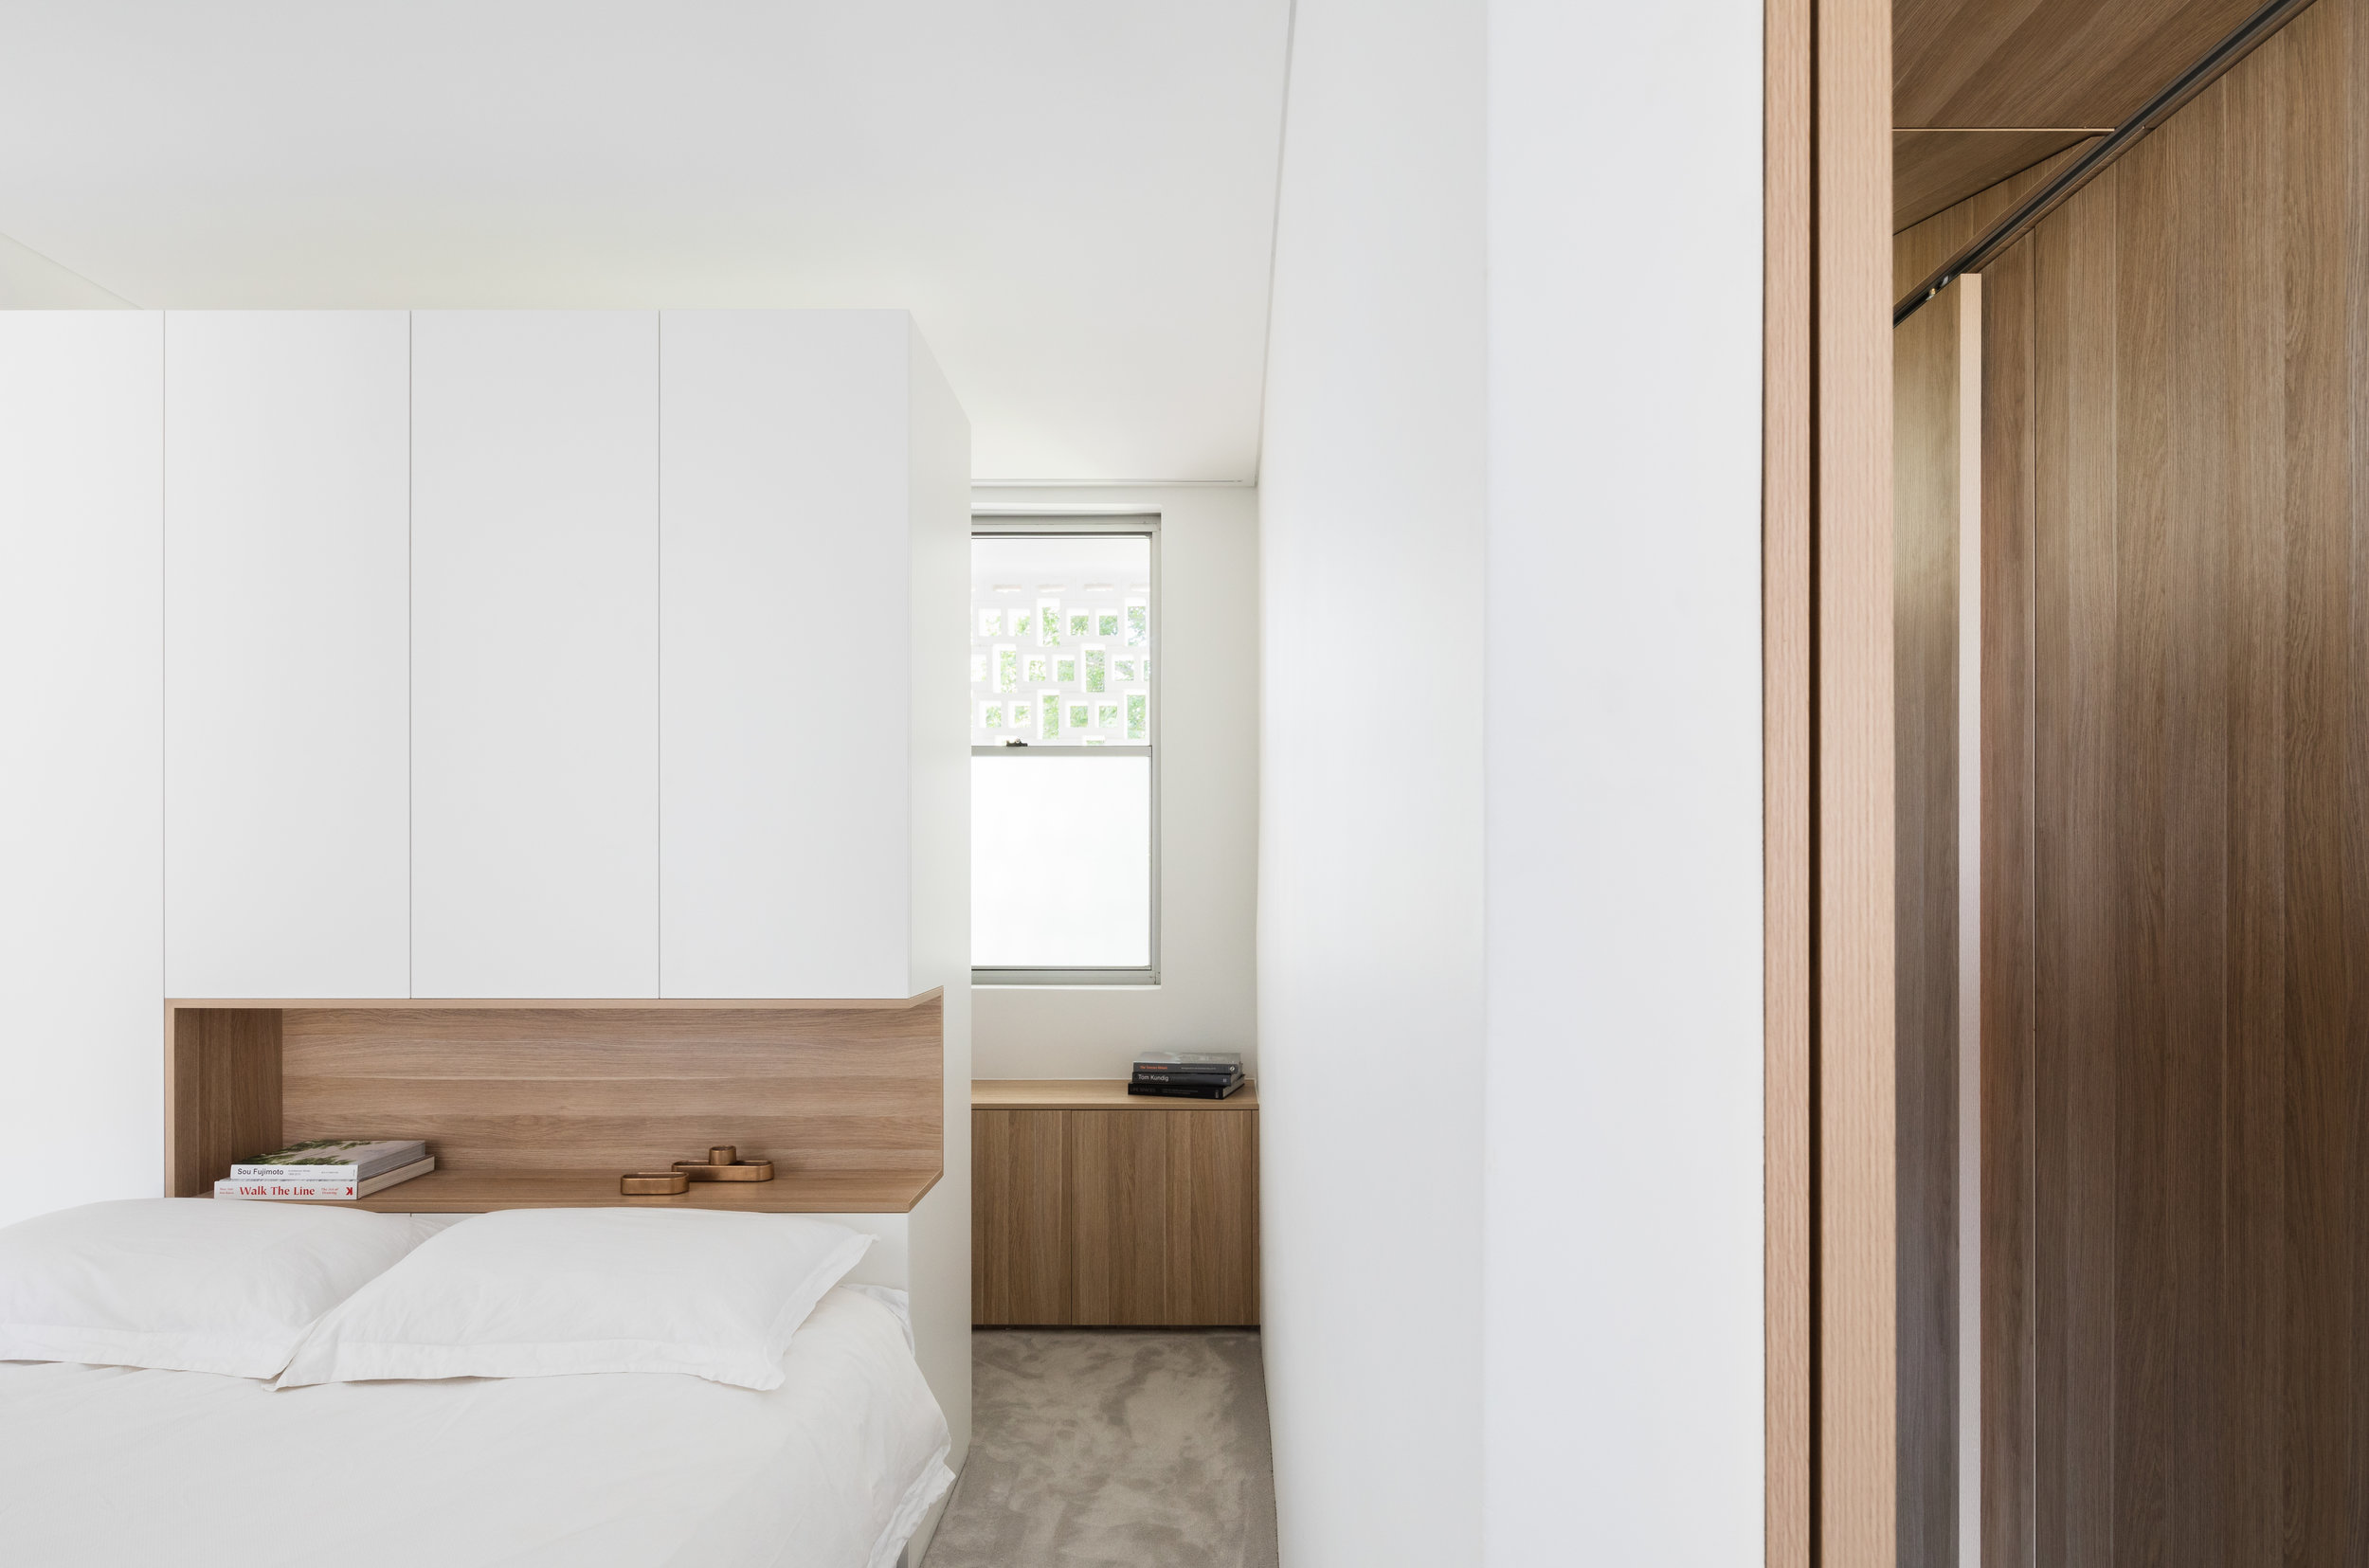 Joinery is the key,allowing clever articulation of form and function and enhancing the feeling of space.Photo by Katherine Lu.